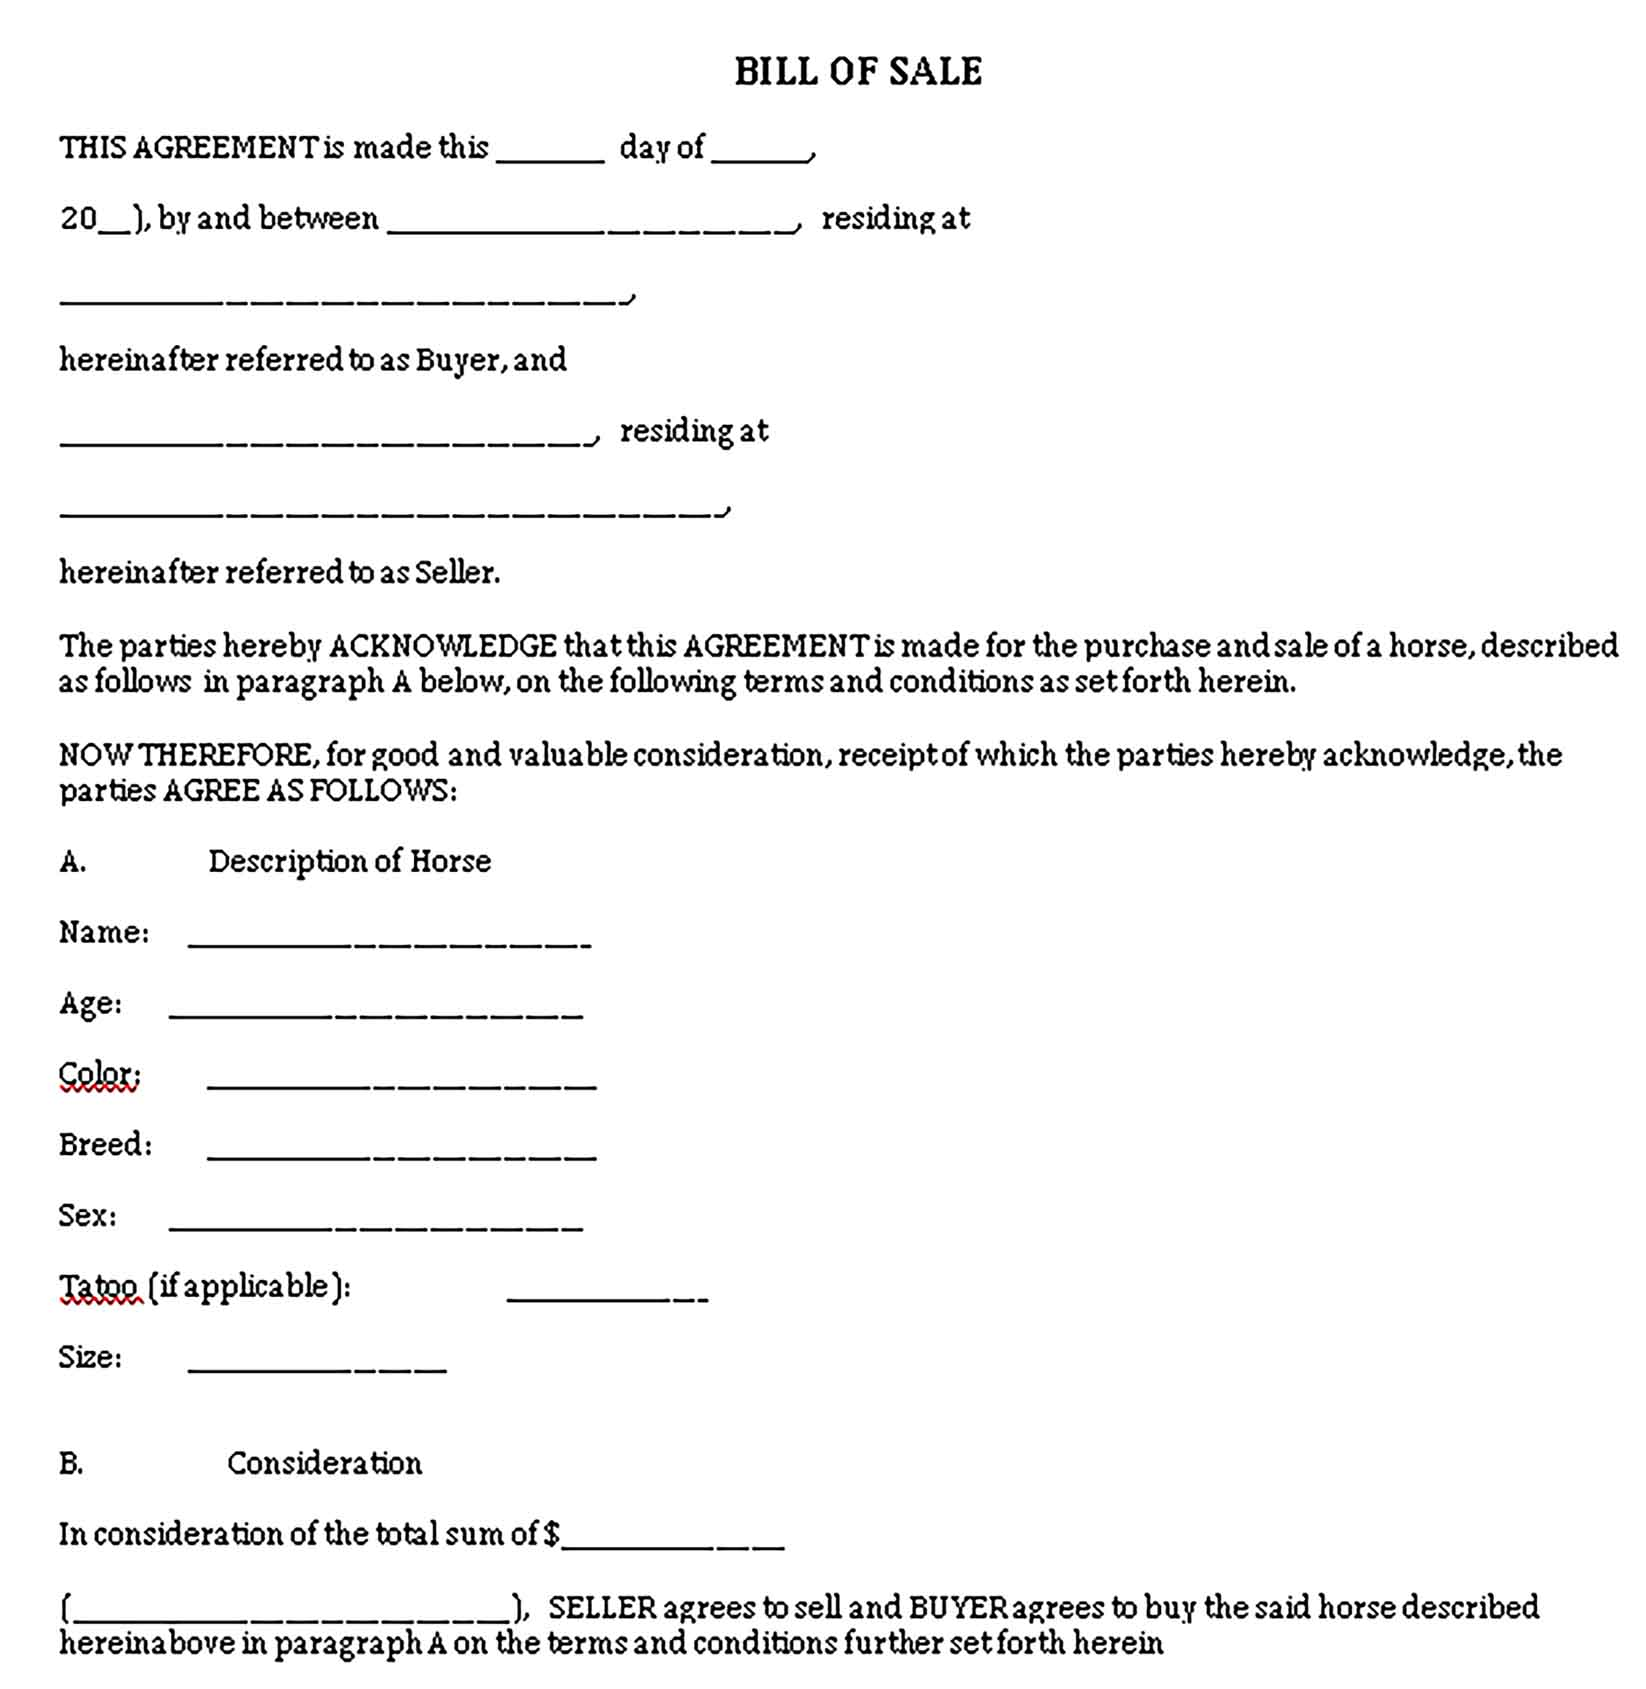 Sample horse bill of sale simple Templates 1